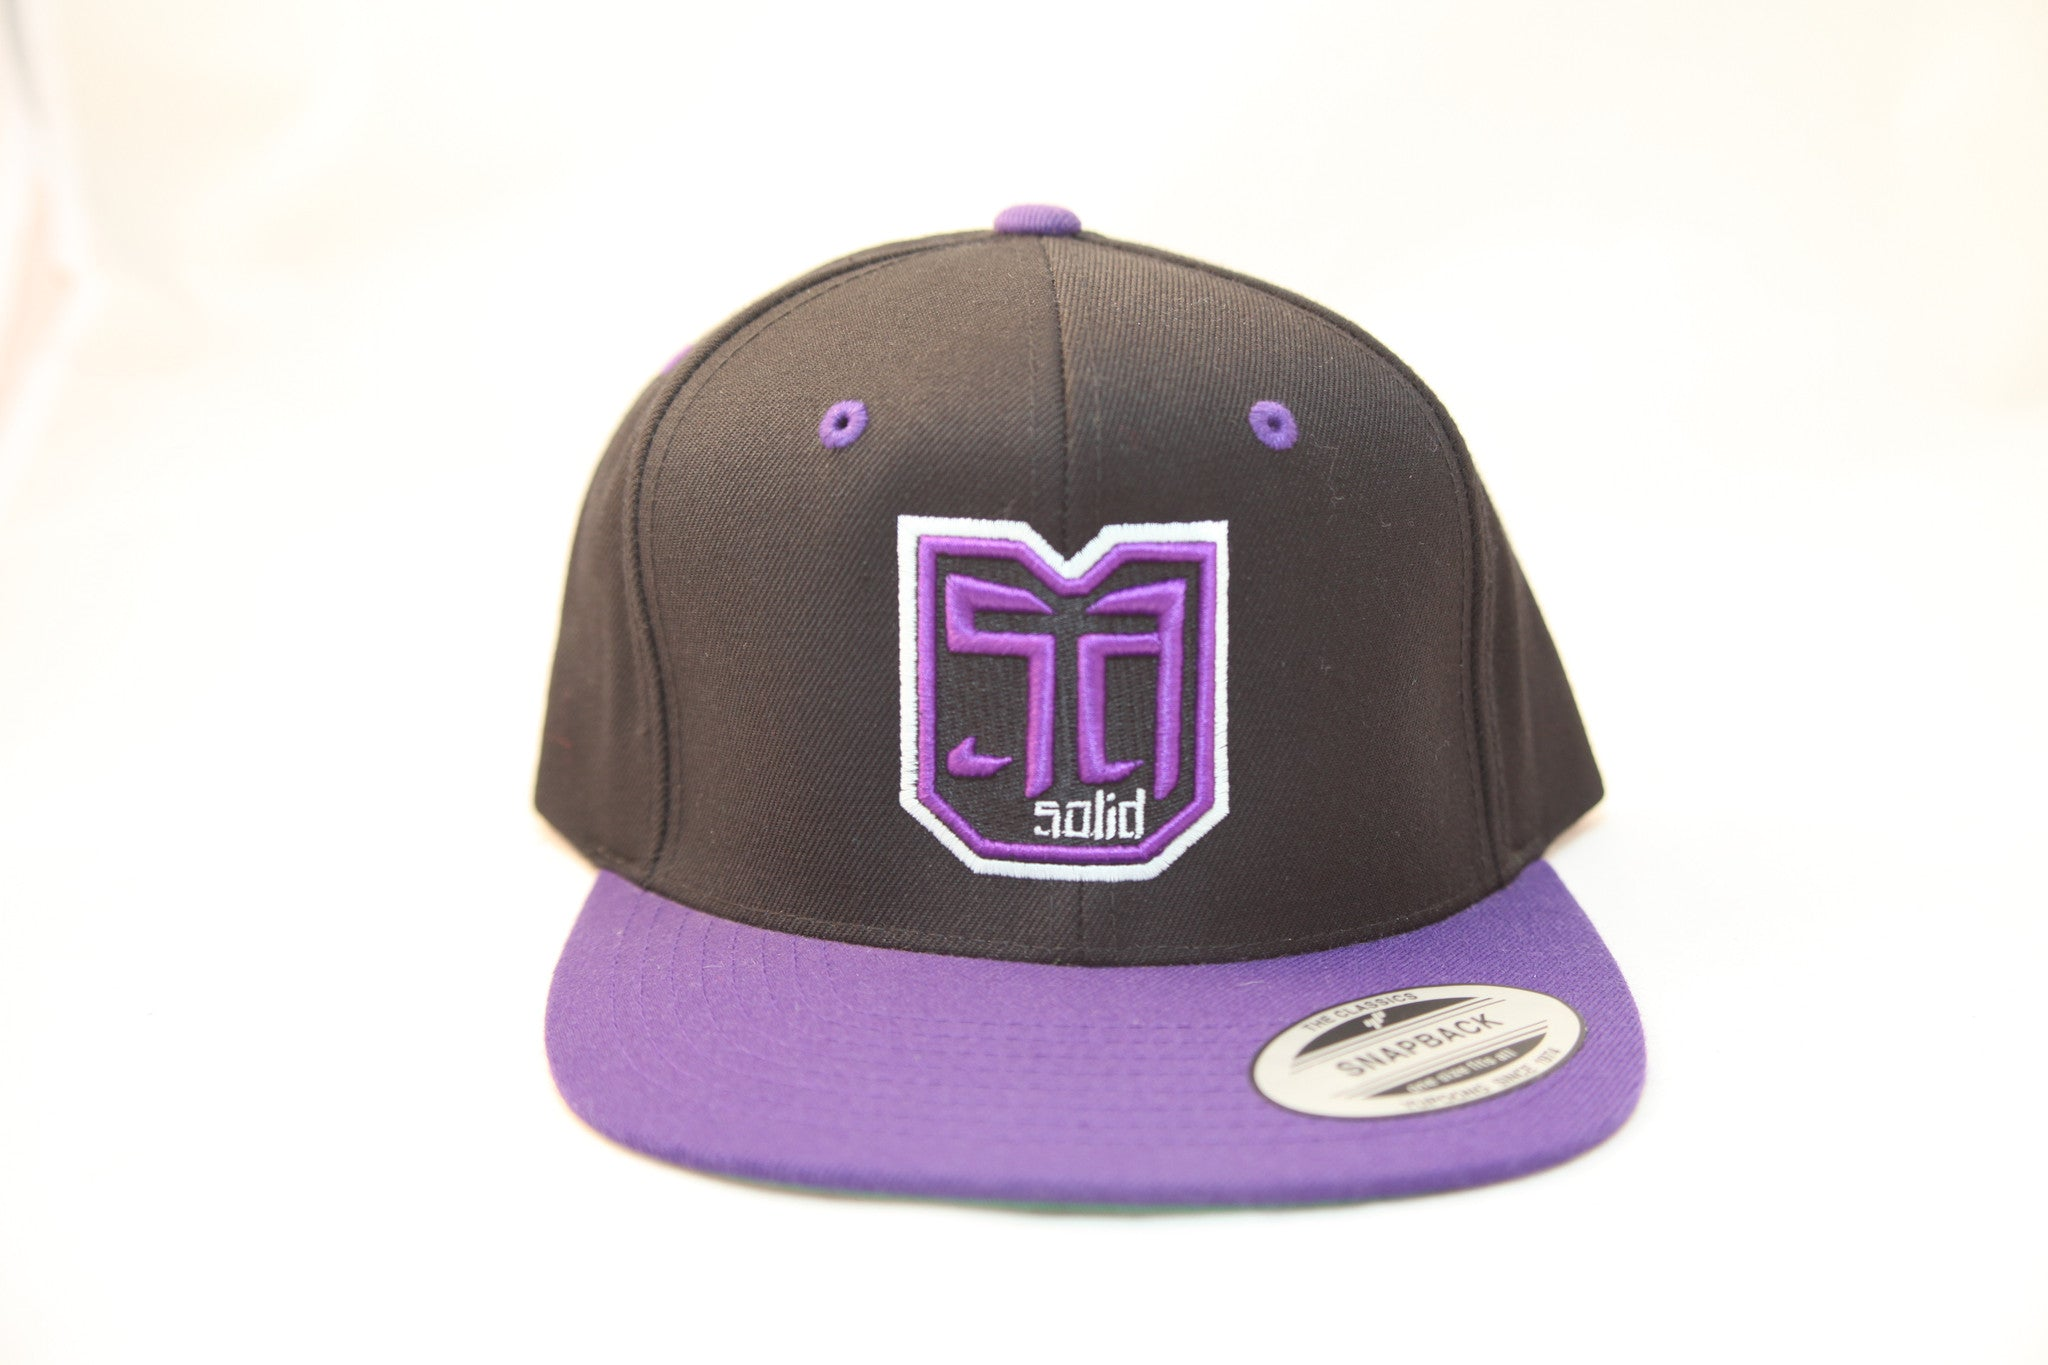 AV8 SHEILD - SNAP BACK - BLACK / PURPLE - PRL / BLK / WHT LOGO